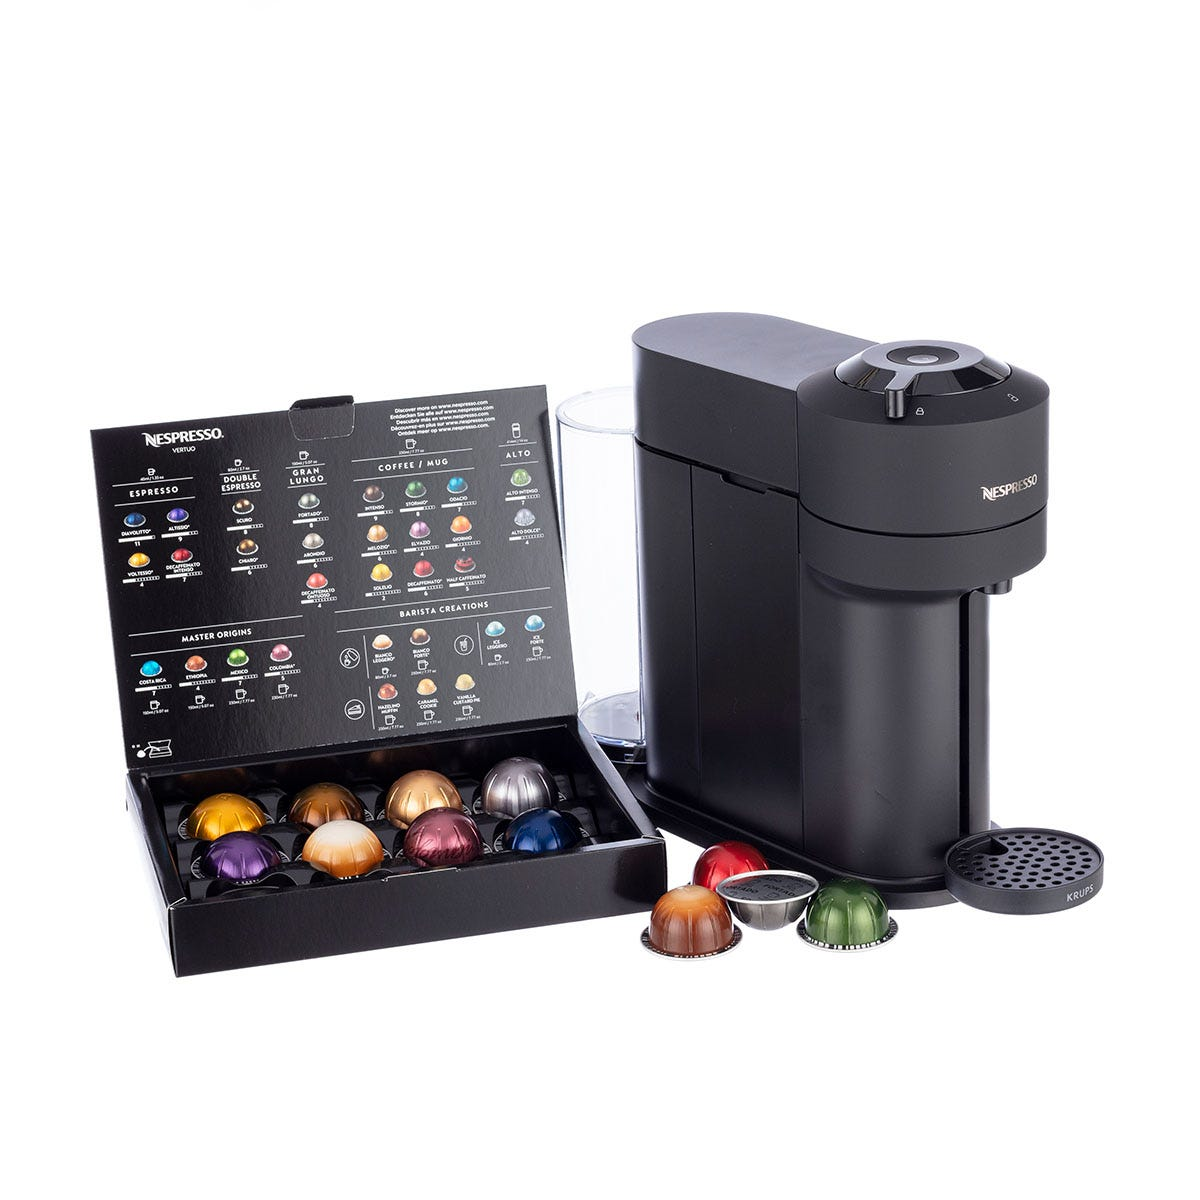 Krups XN910N40 Nespresso Vertuo Next Coffee Machine, Black - 12 x coffee capsules free when you buy this product